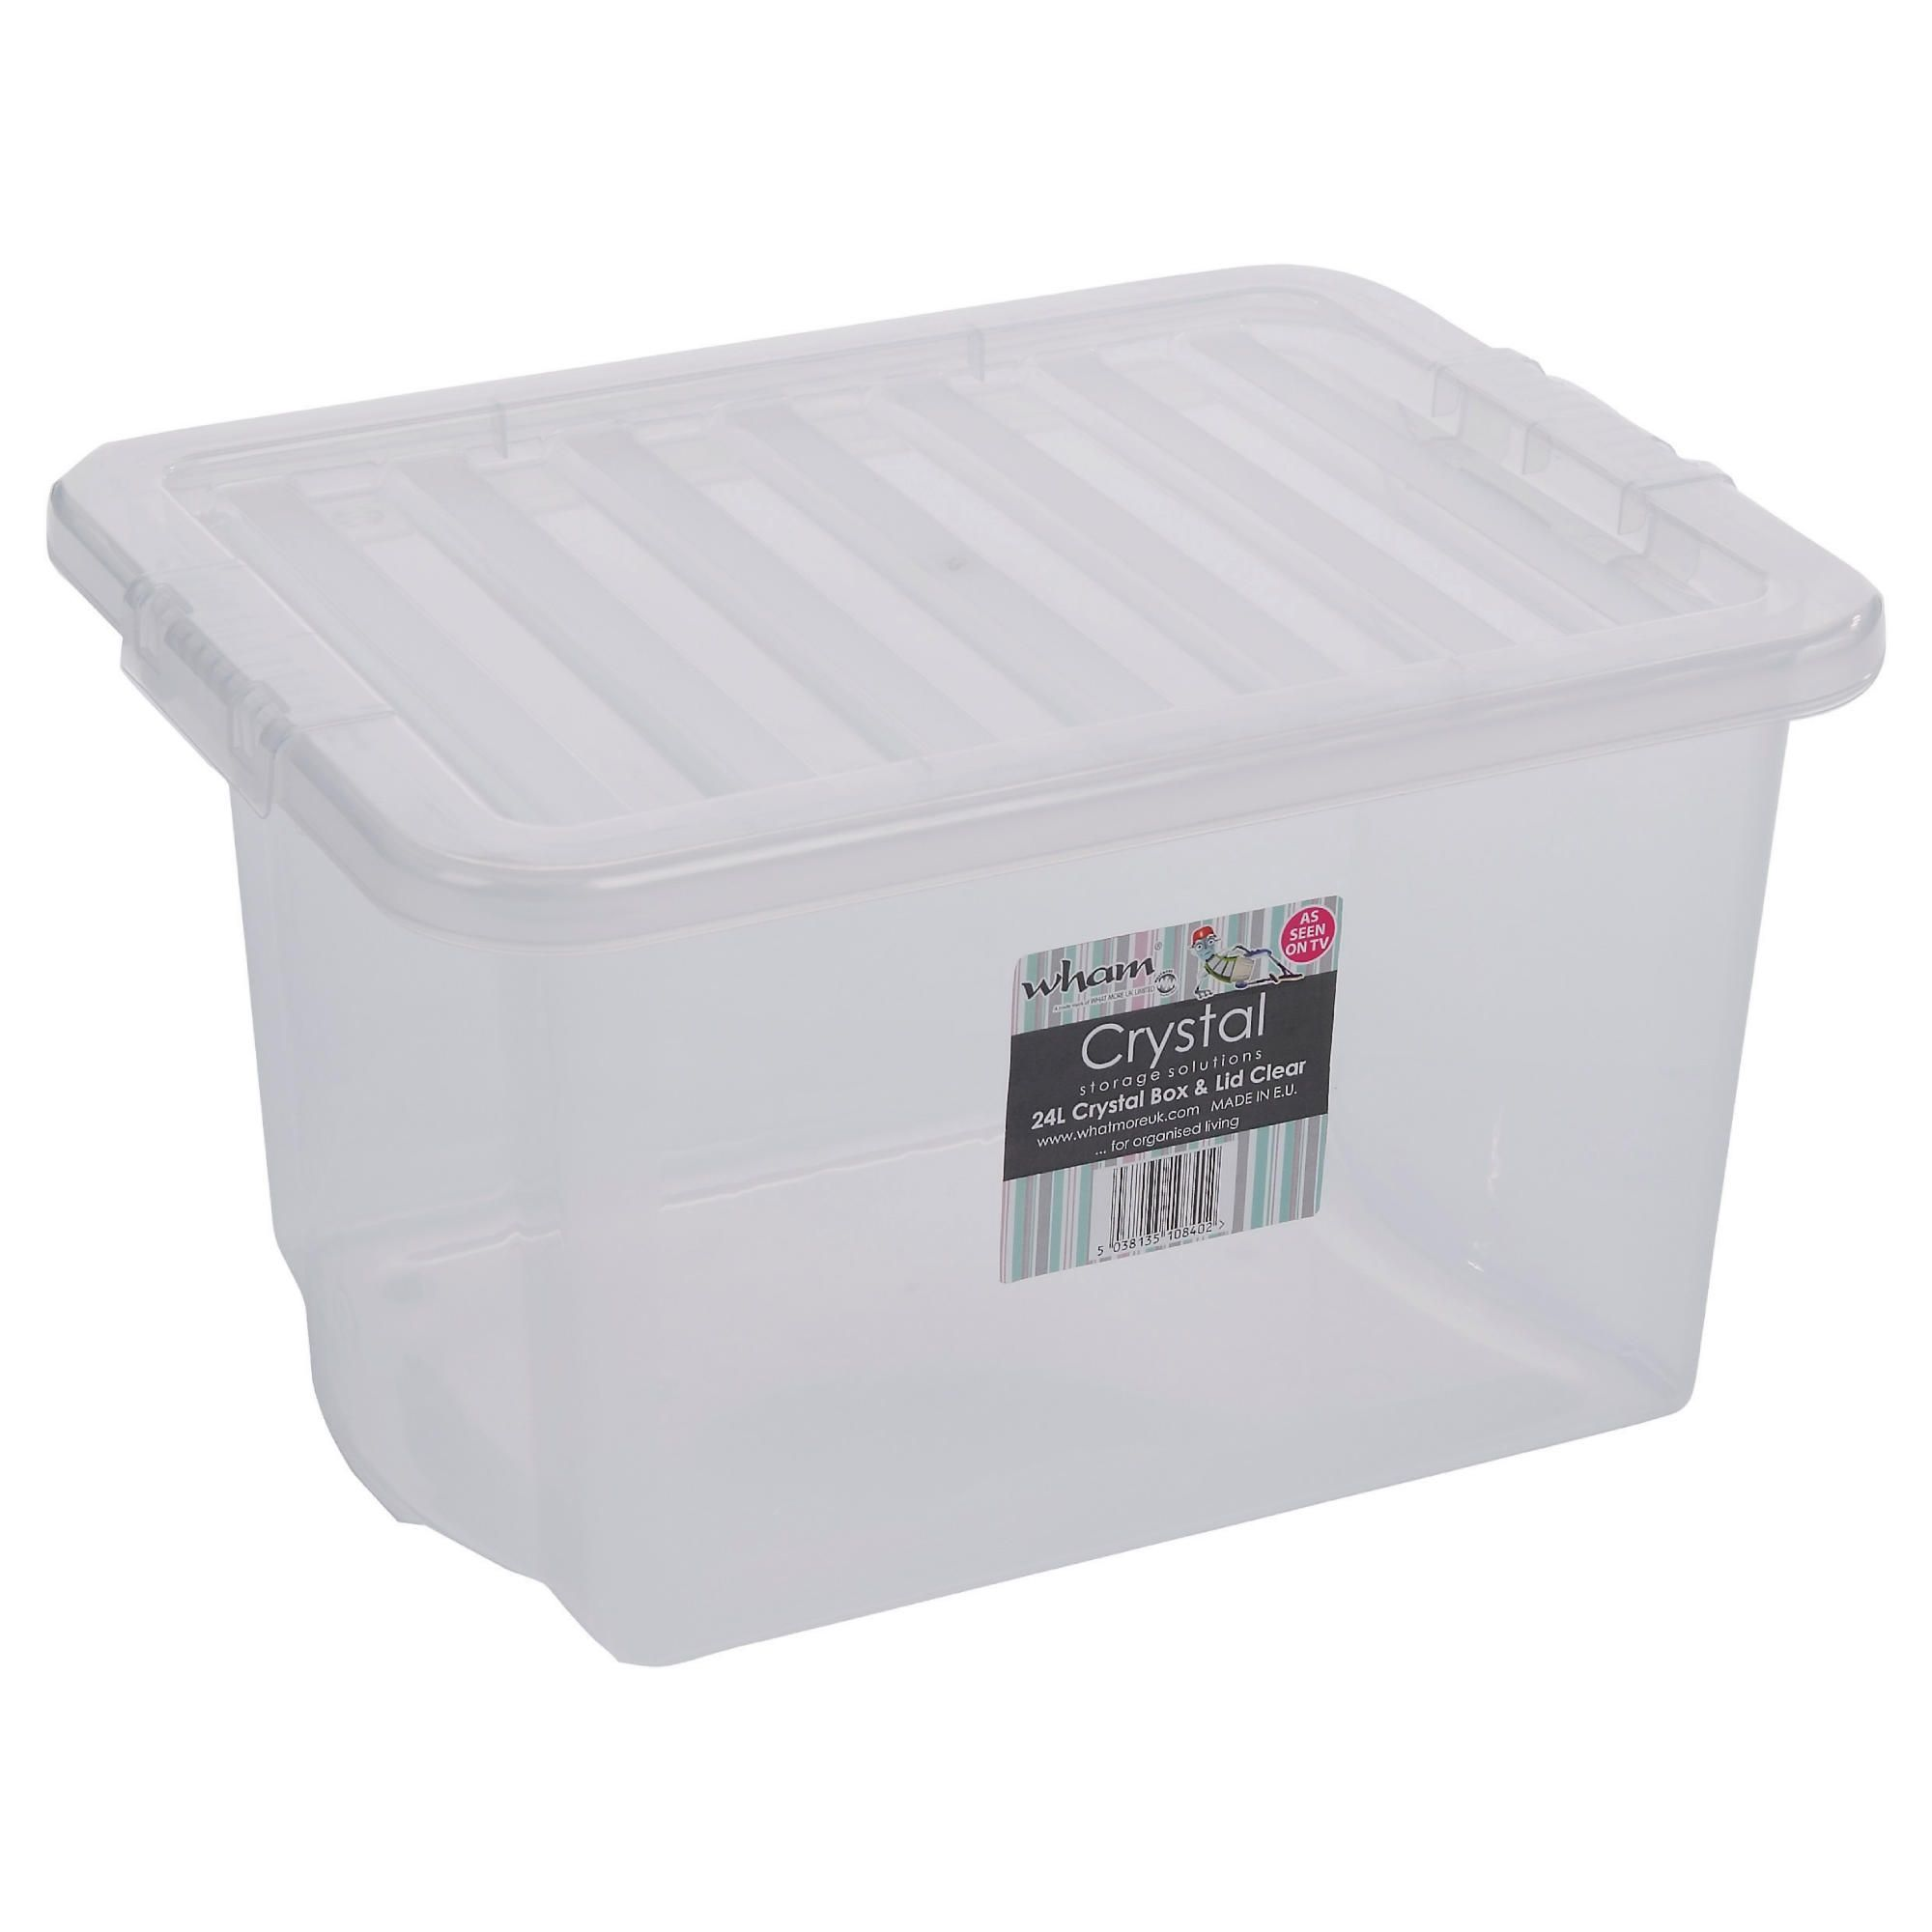 Wham Crystal 24L storage box with lid, clear